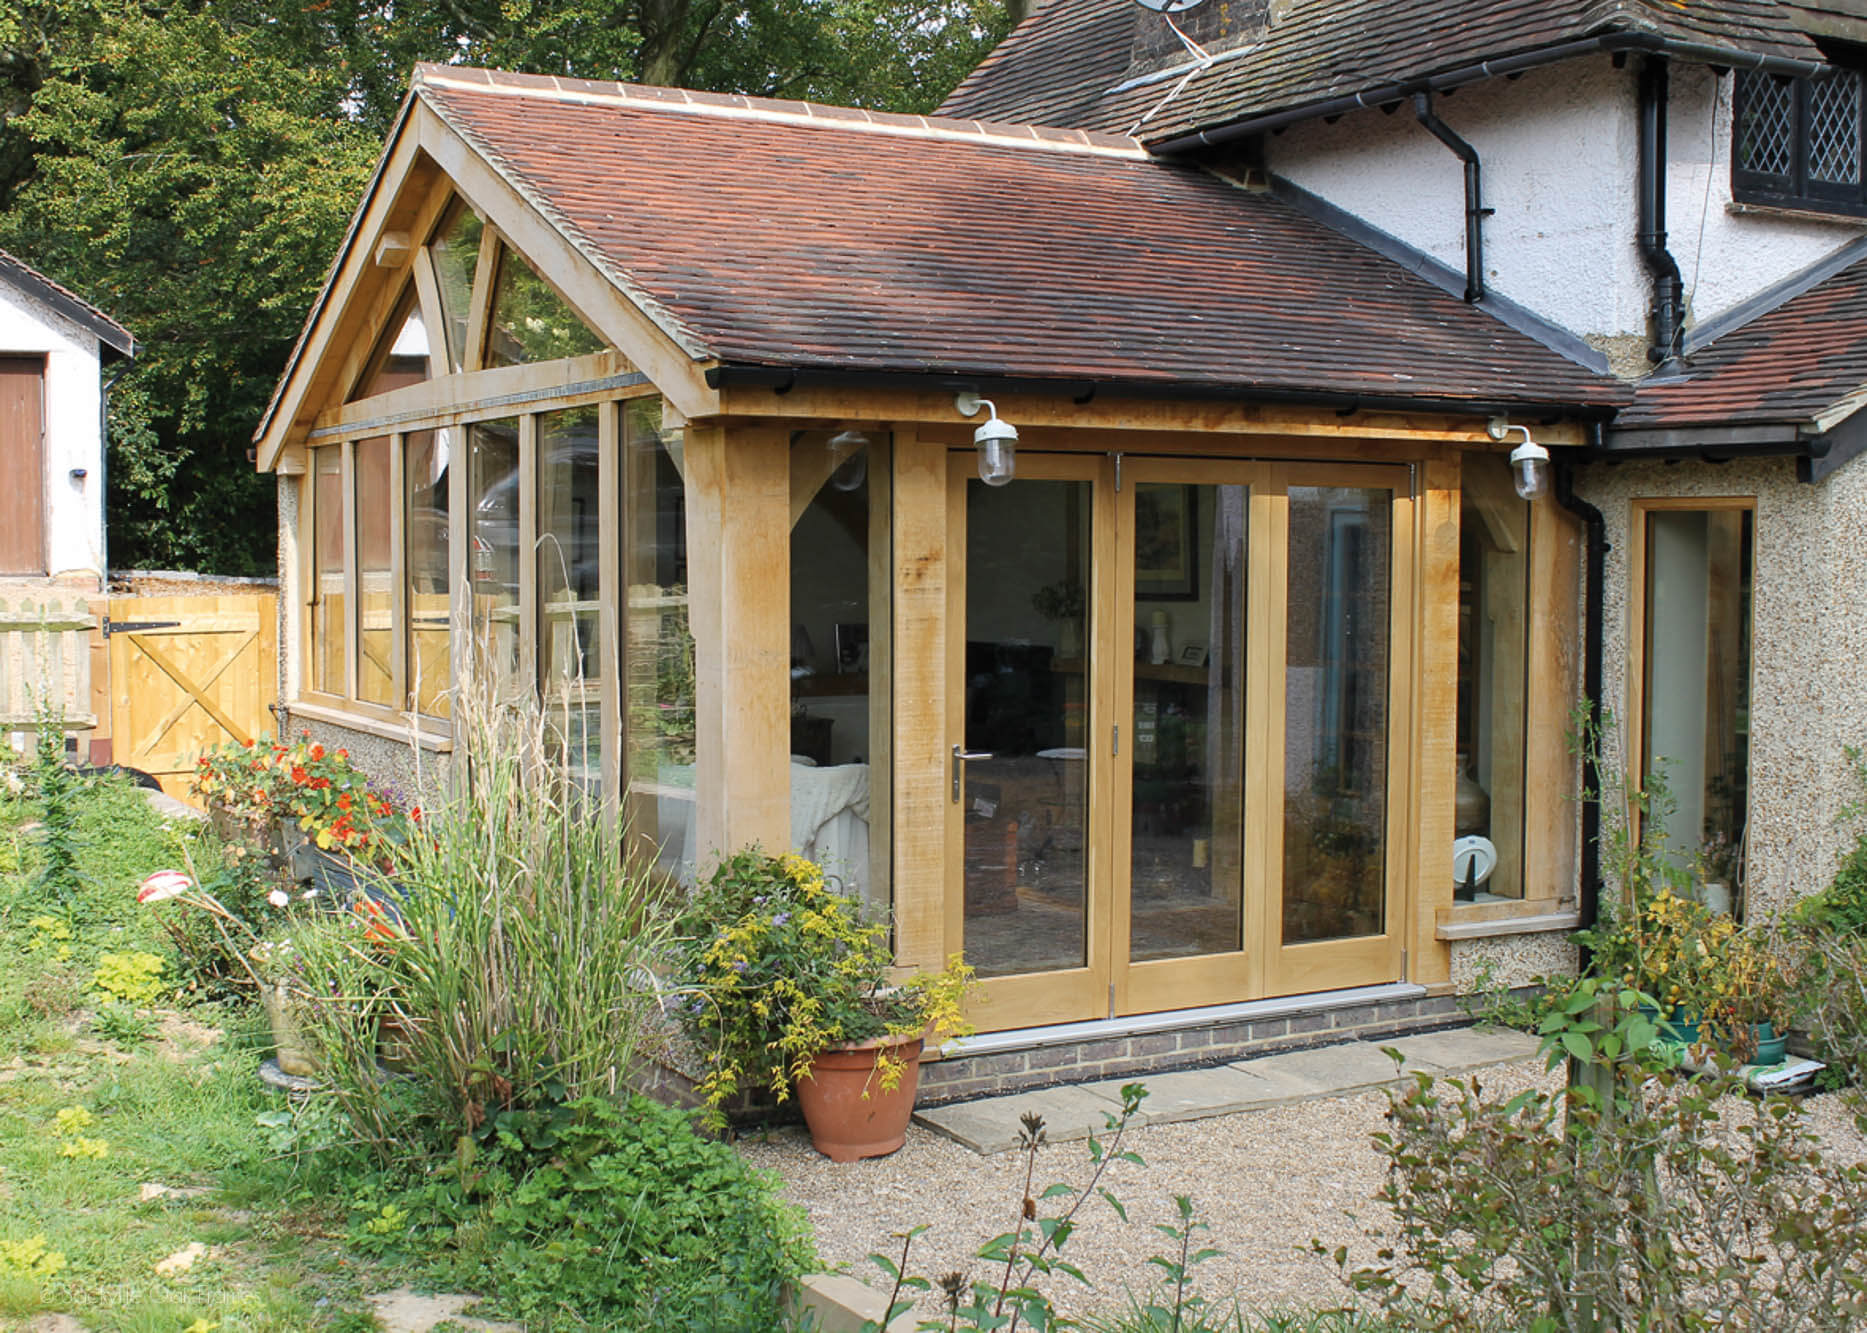 Sackville Oak Frames   Oak Framed Extension   Listed Property   Oak    Extension